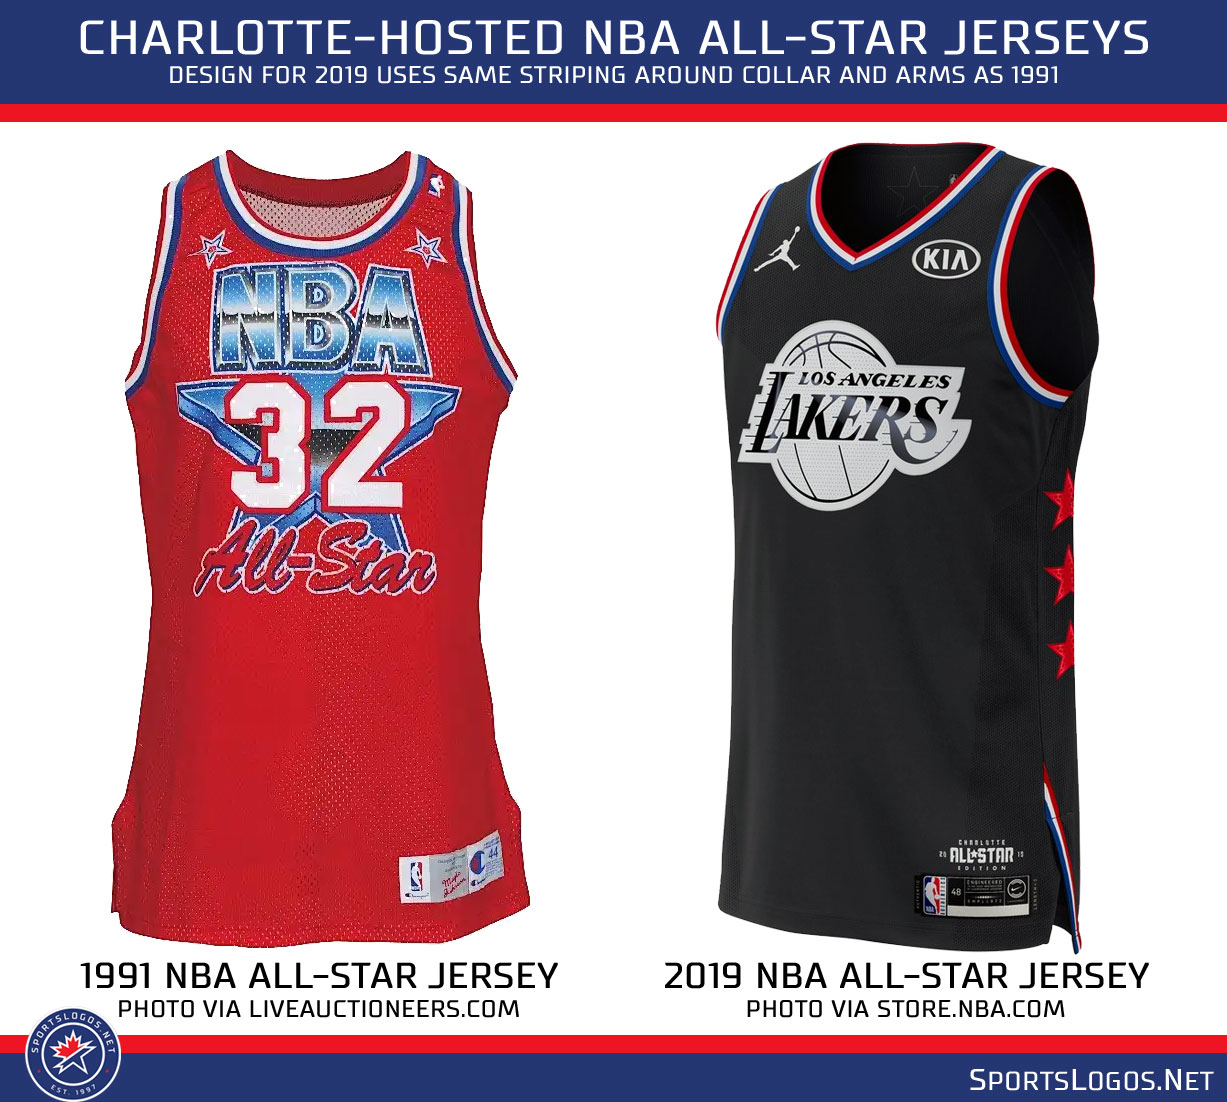 9c4f71ddef1 2019 NBA All-Star Game Uniforms Officially Unveiled